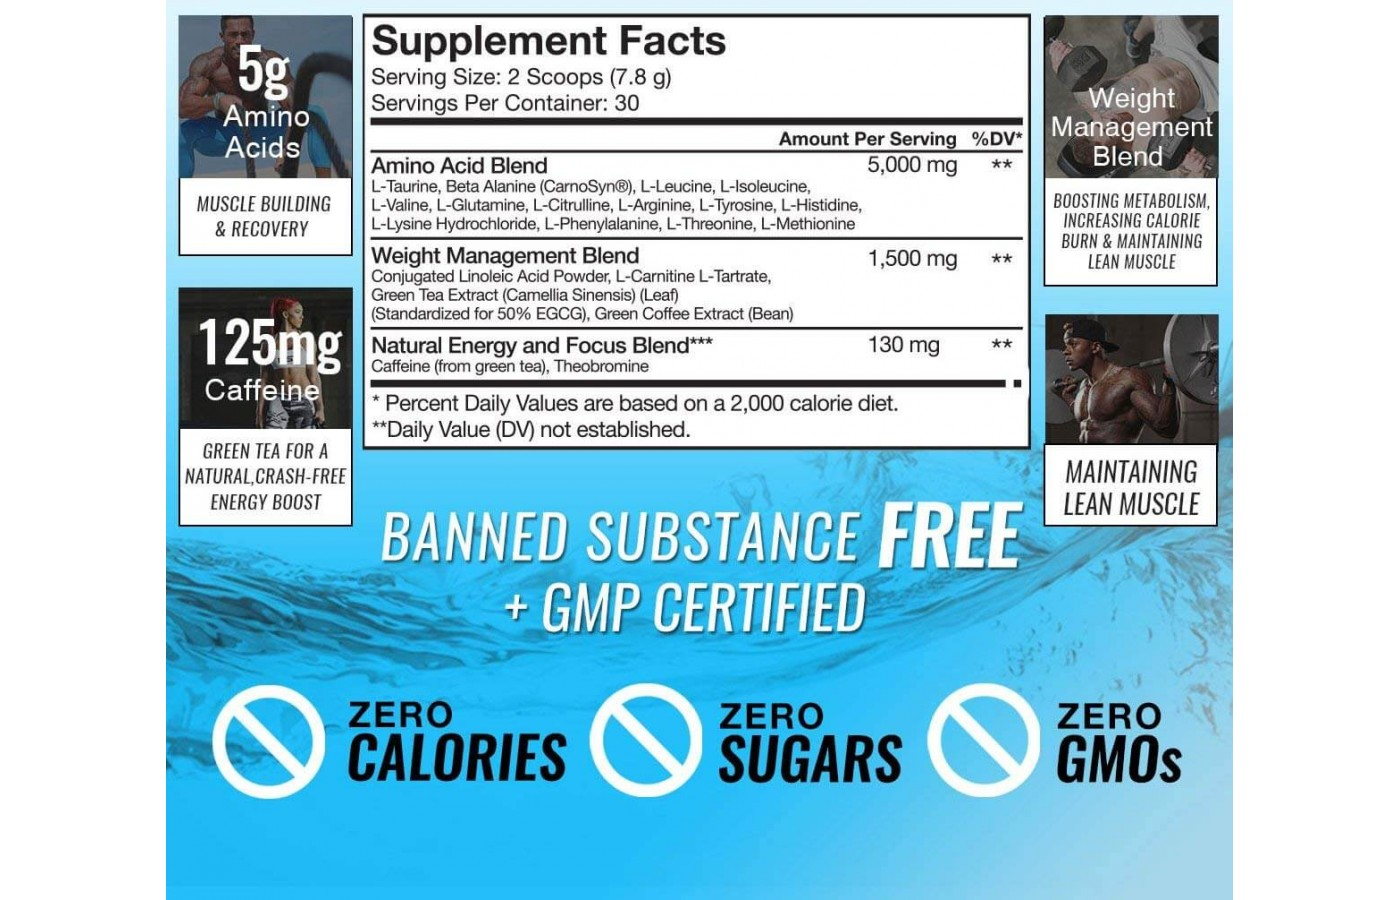 AminoLean Sup Facts